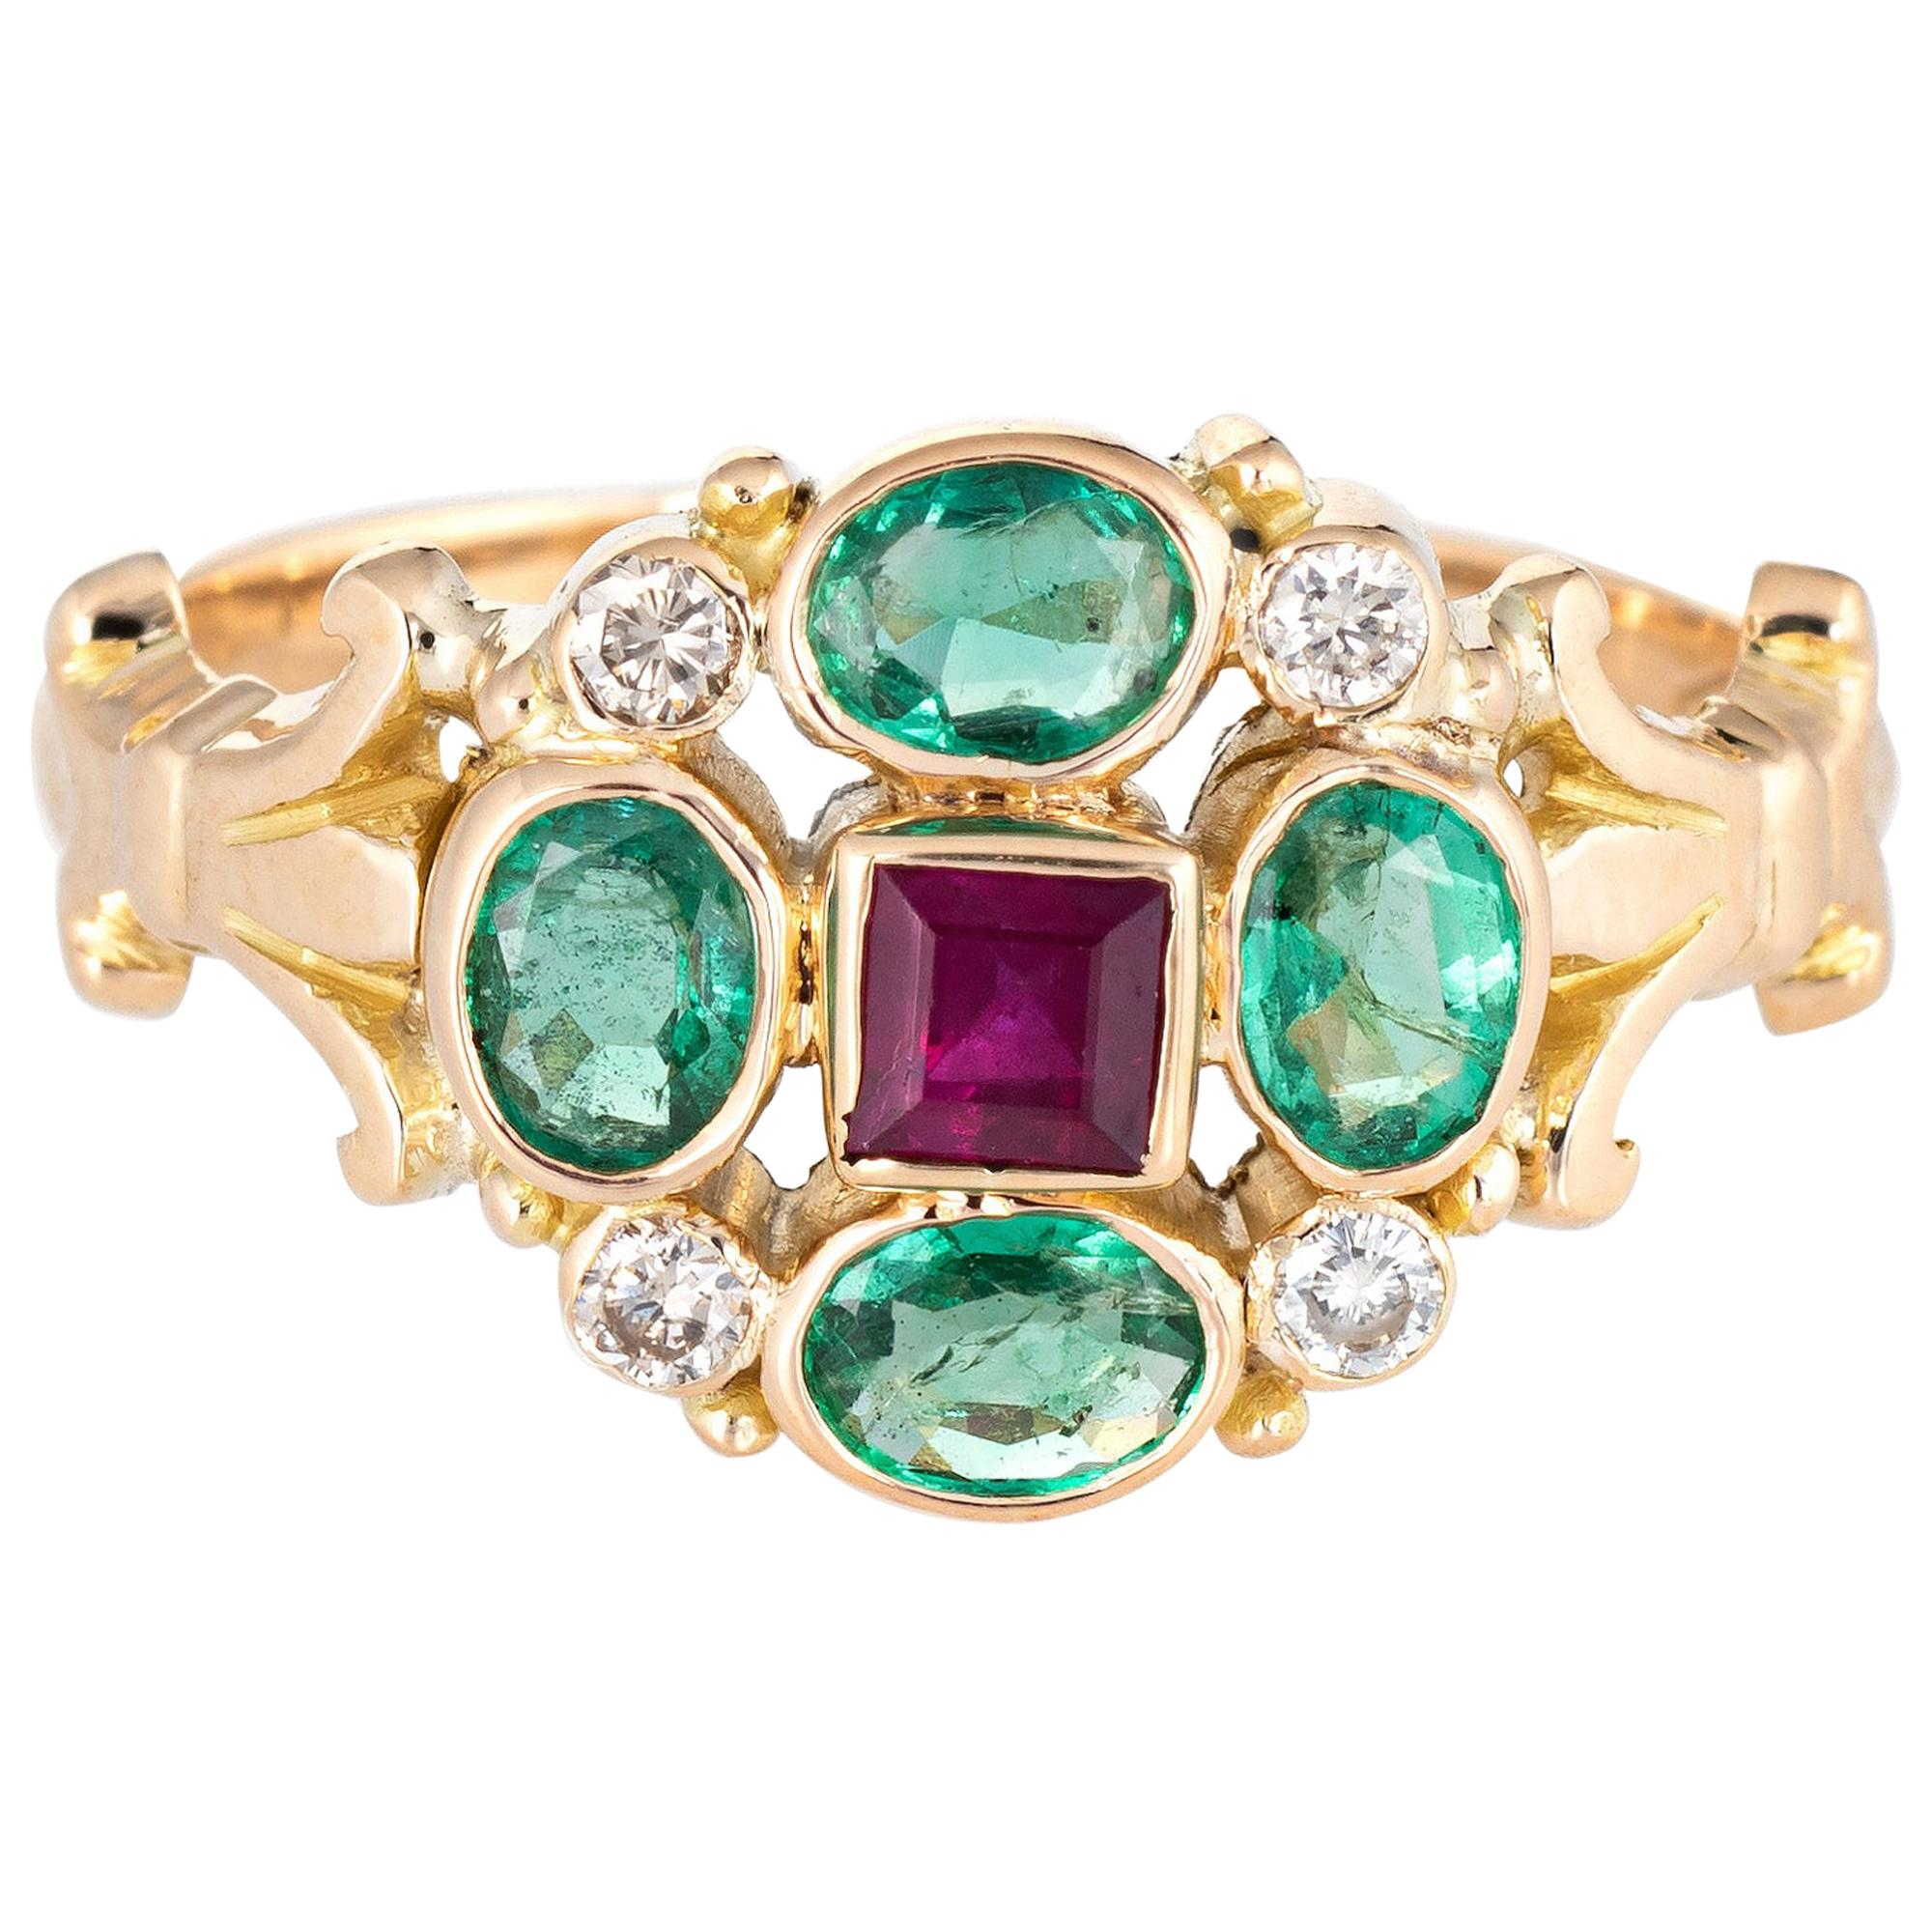 Emerald Ruby Cluster Ring Vintage 18 Karat Yellow Gold Estate Fine Jewelry